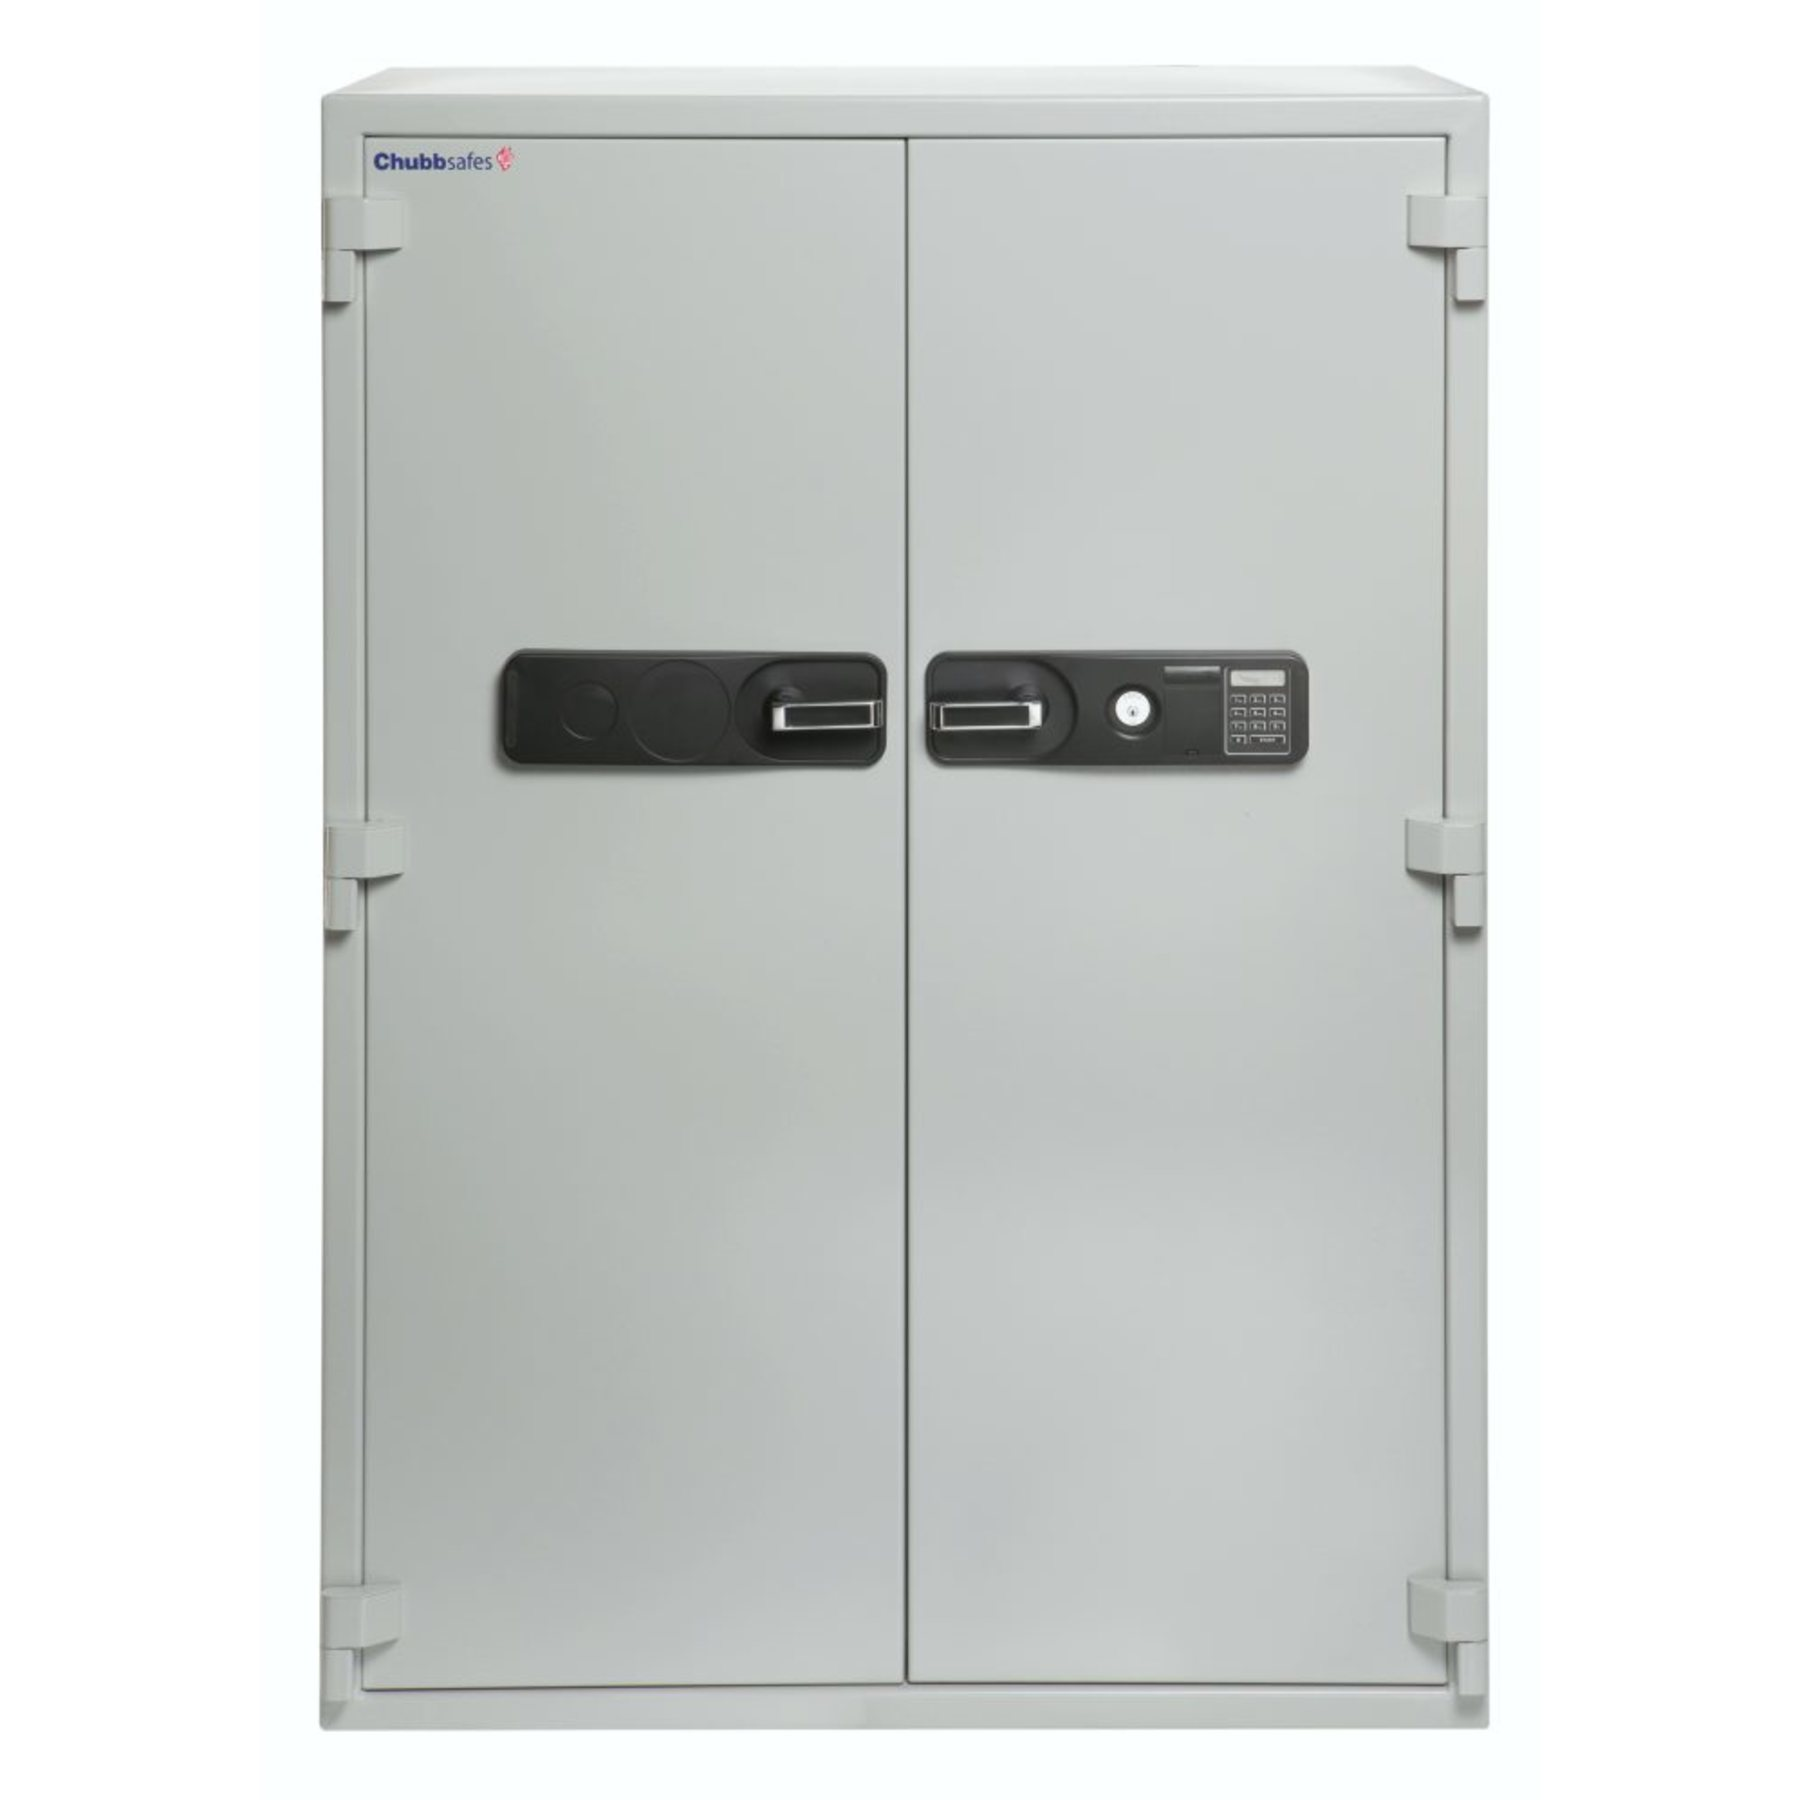 Chubbsafes Office 785 Fire Resistant Safe | All Safes Ireland